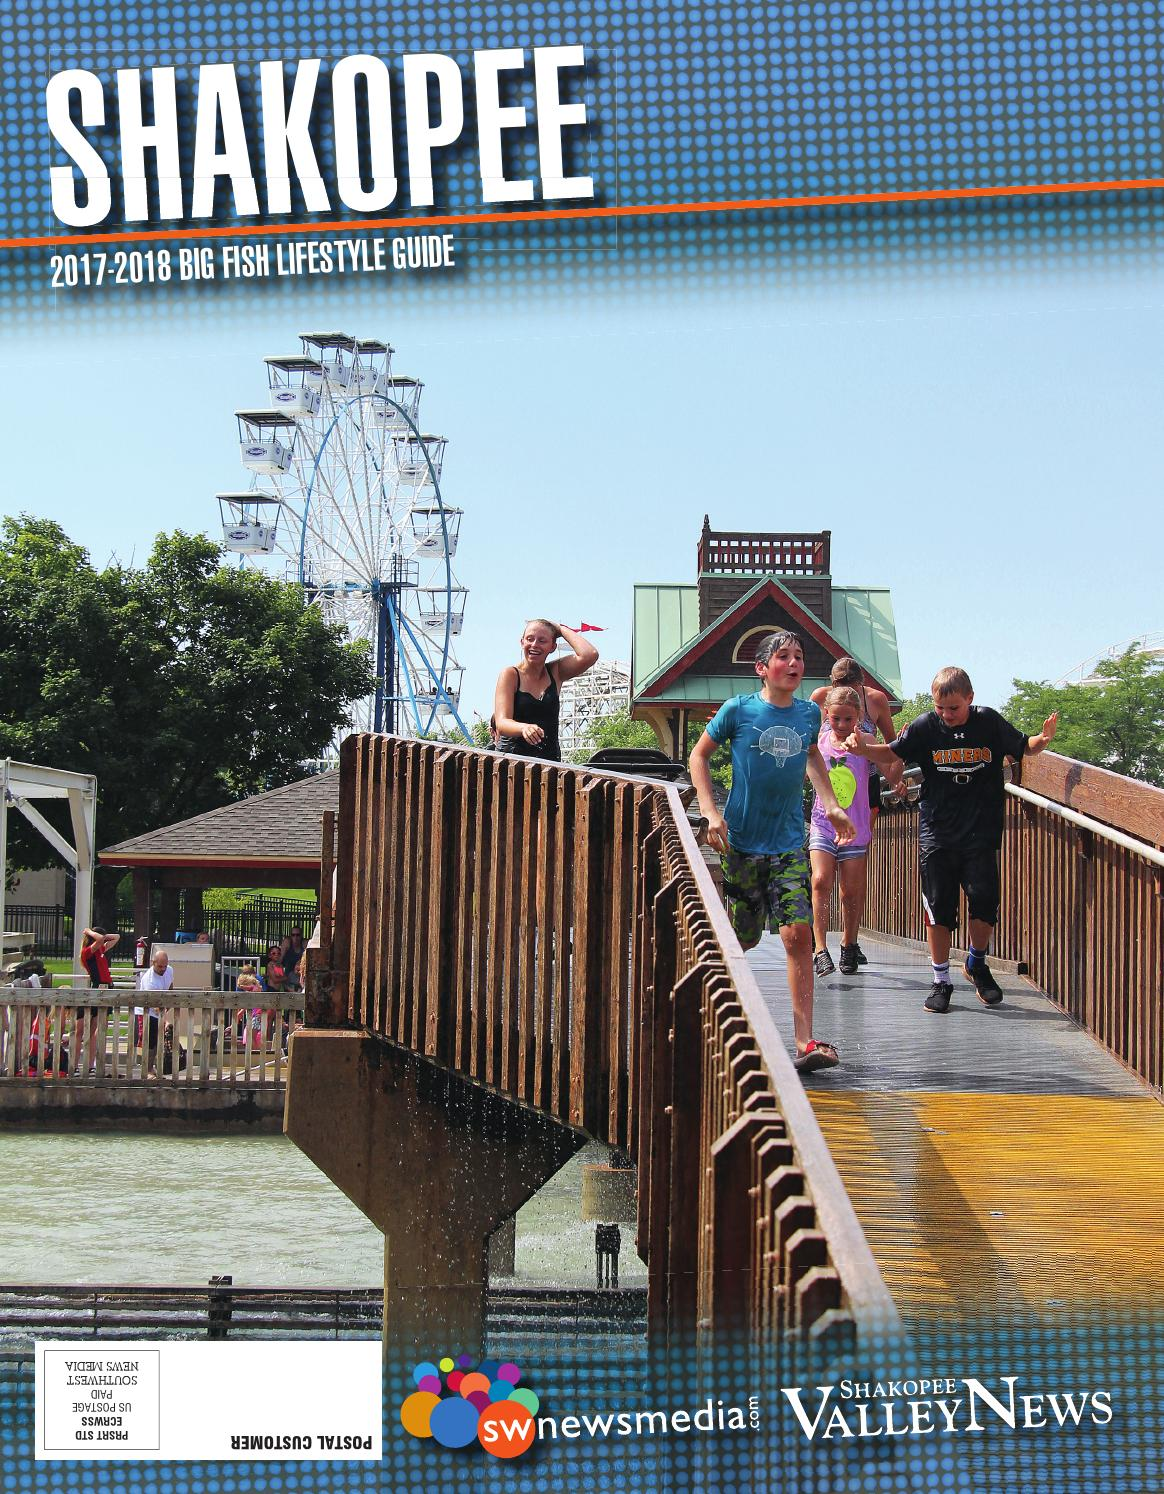 Shakopee Lifestyle Guide 2017-2018 by Big Fish Works - issuu